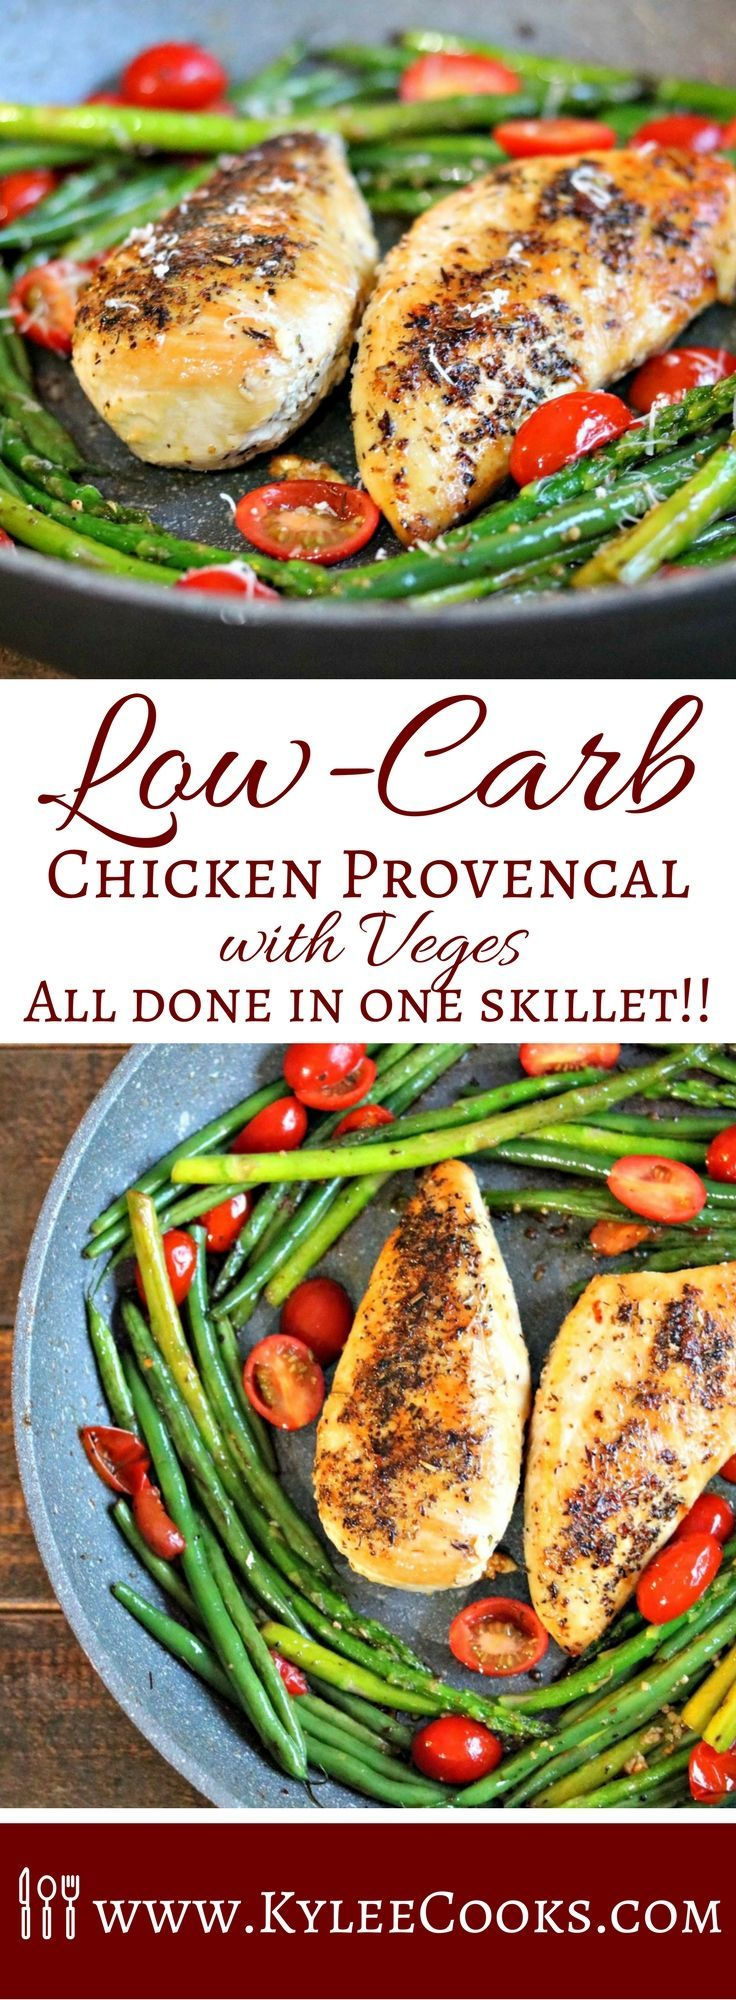 A super fast low carb chicken dinner that is a total weeknight winner! Using just one skillet, dinner is ready in 20 minutes! #lowcarb #chicken #weeknight via @kyleecooks